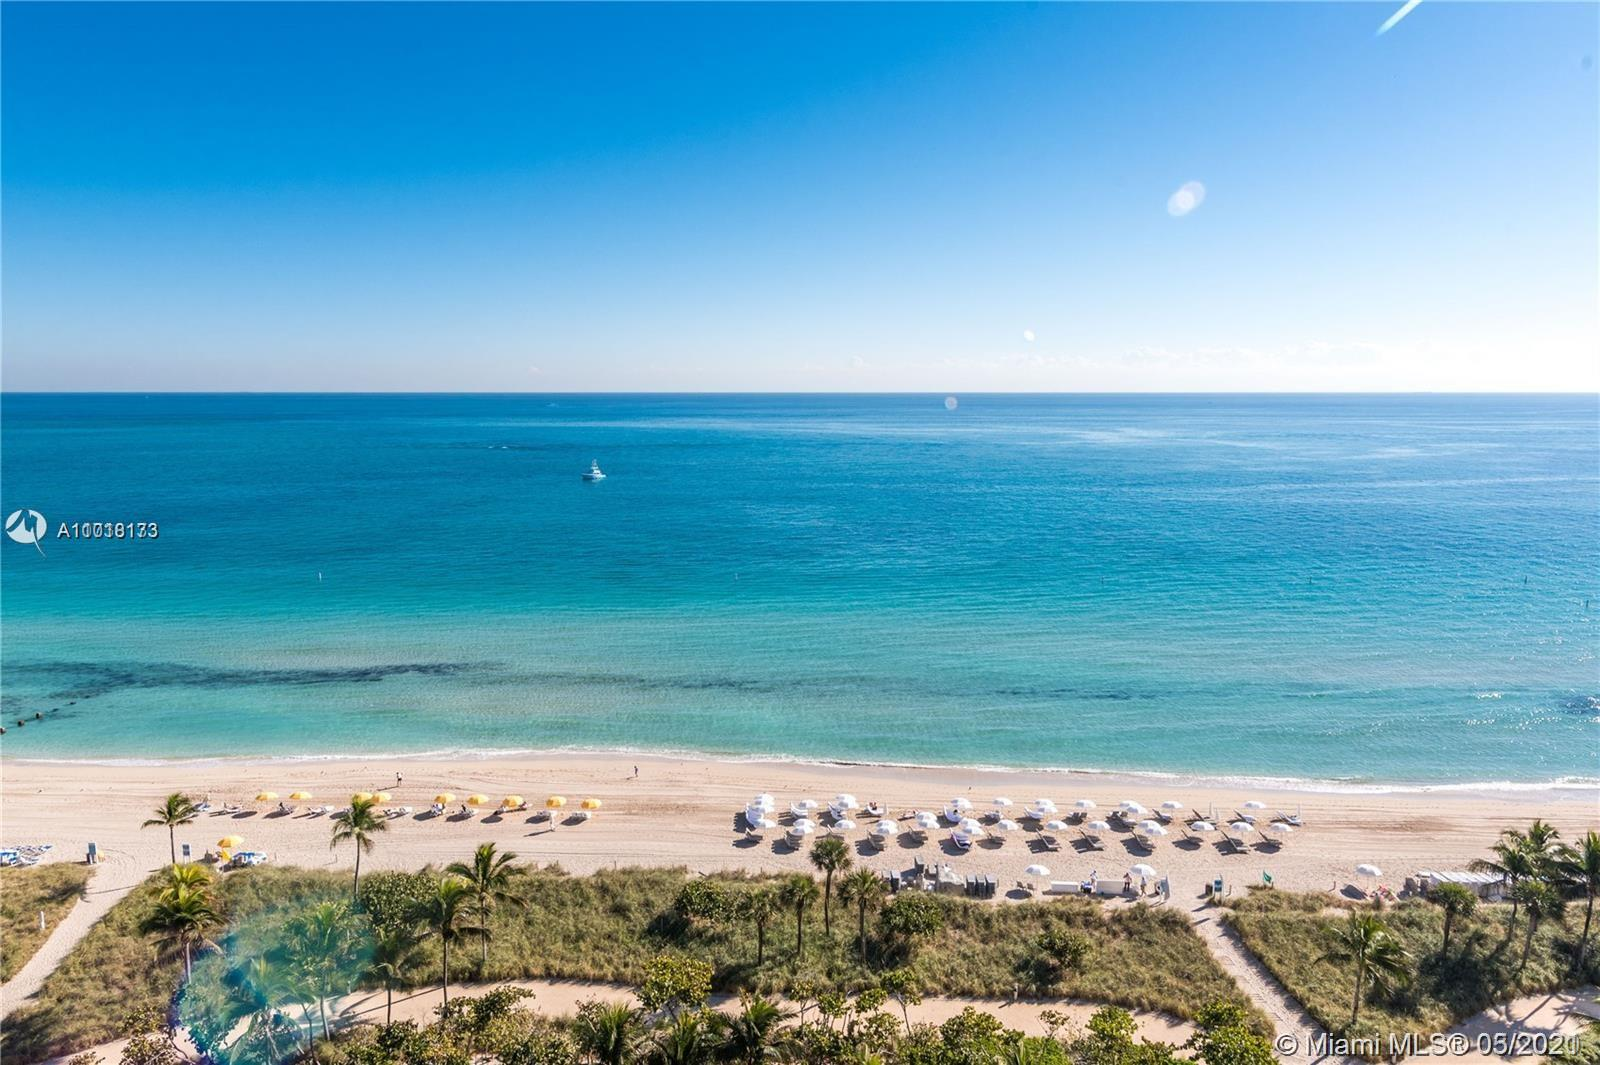 Enjoy living in the prestigious Balmoral condominium located in the heart of Bal Harbour and across the street from the exclusive Bal Harbour Shops. This impeccable 3 bedrooms & 2 Bath unit features straight ocean views from every room. Has walk-in closets,washer & dryer. The building includes, Pool with complete full service and full beach services / towels,lounge,chairs, umbrellas,3 tennis courts,fitness center,indoor play area,library,business center,billiard, table tennis,restaurant with a bar,hair salon,sauna,spa,24 hours concierge,security, bellman,valet parking. Maintanence includes water,cable,Internet. Walking distance to restaurants, shops, Synagogues